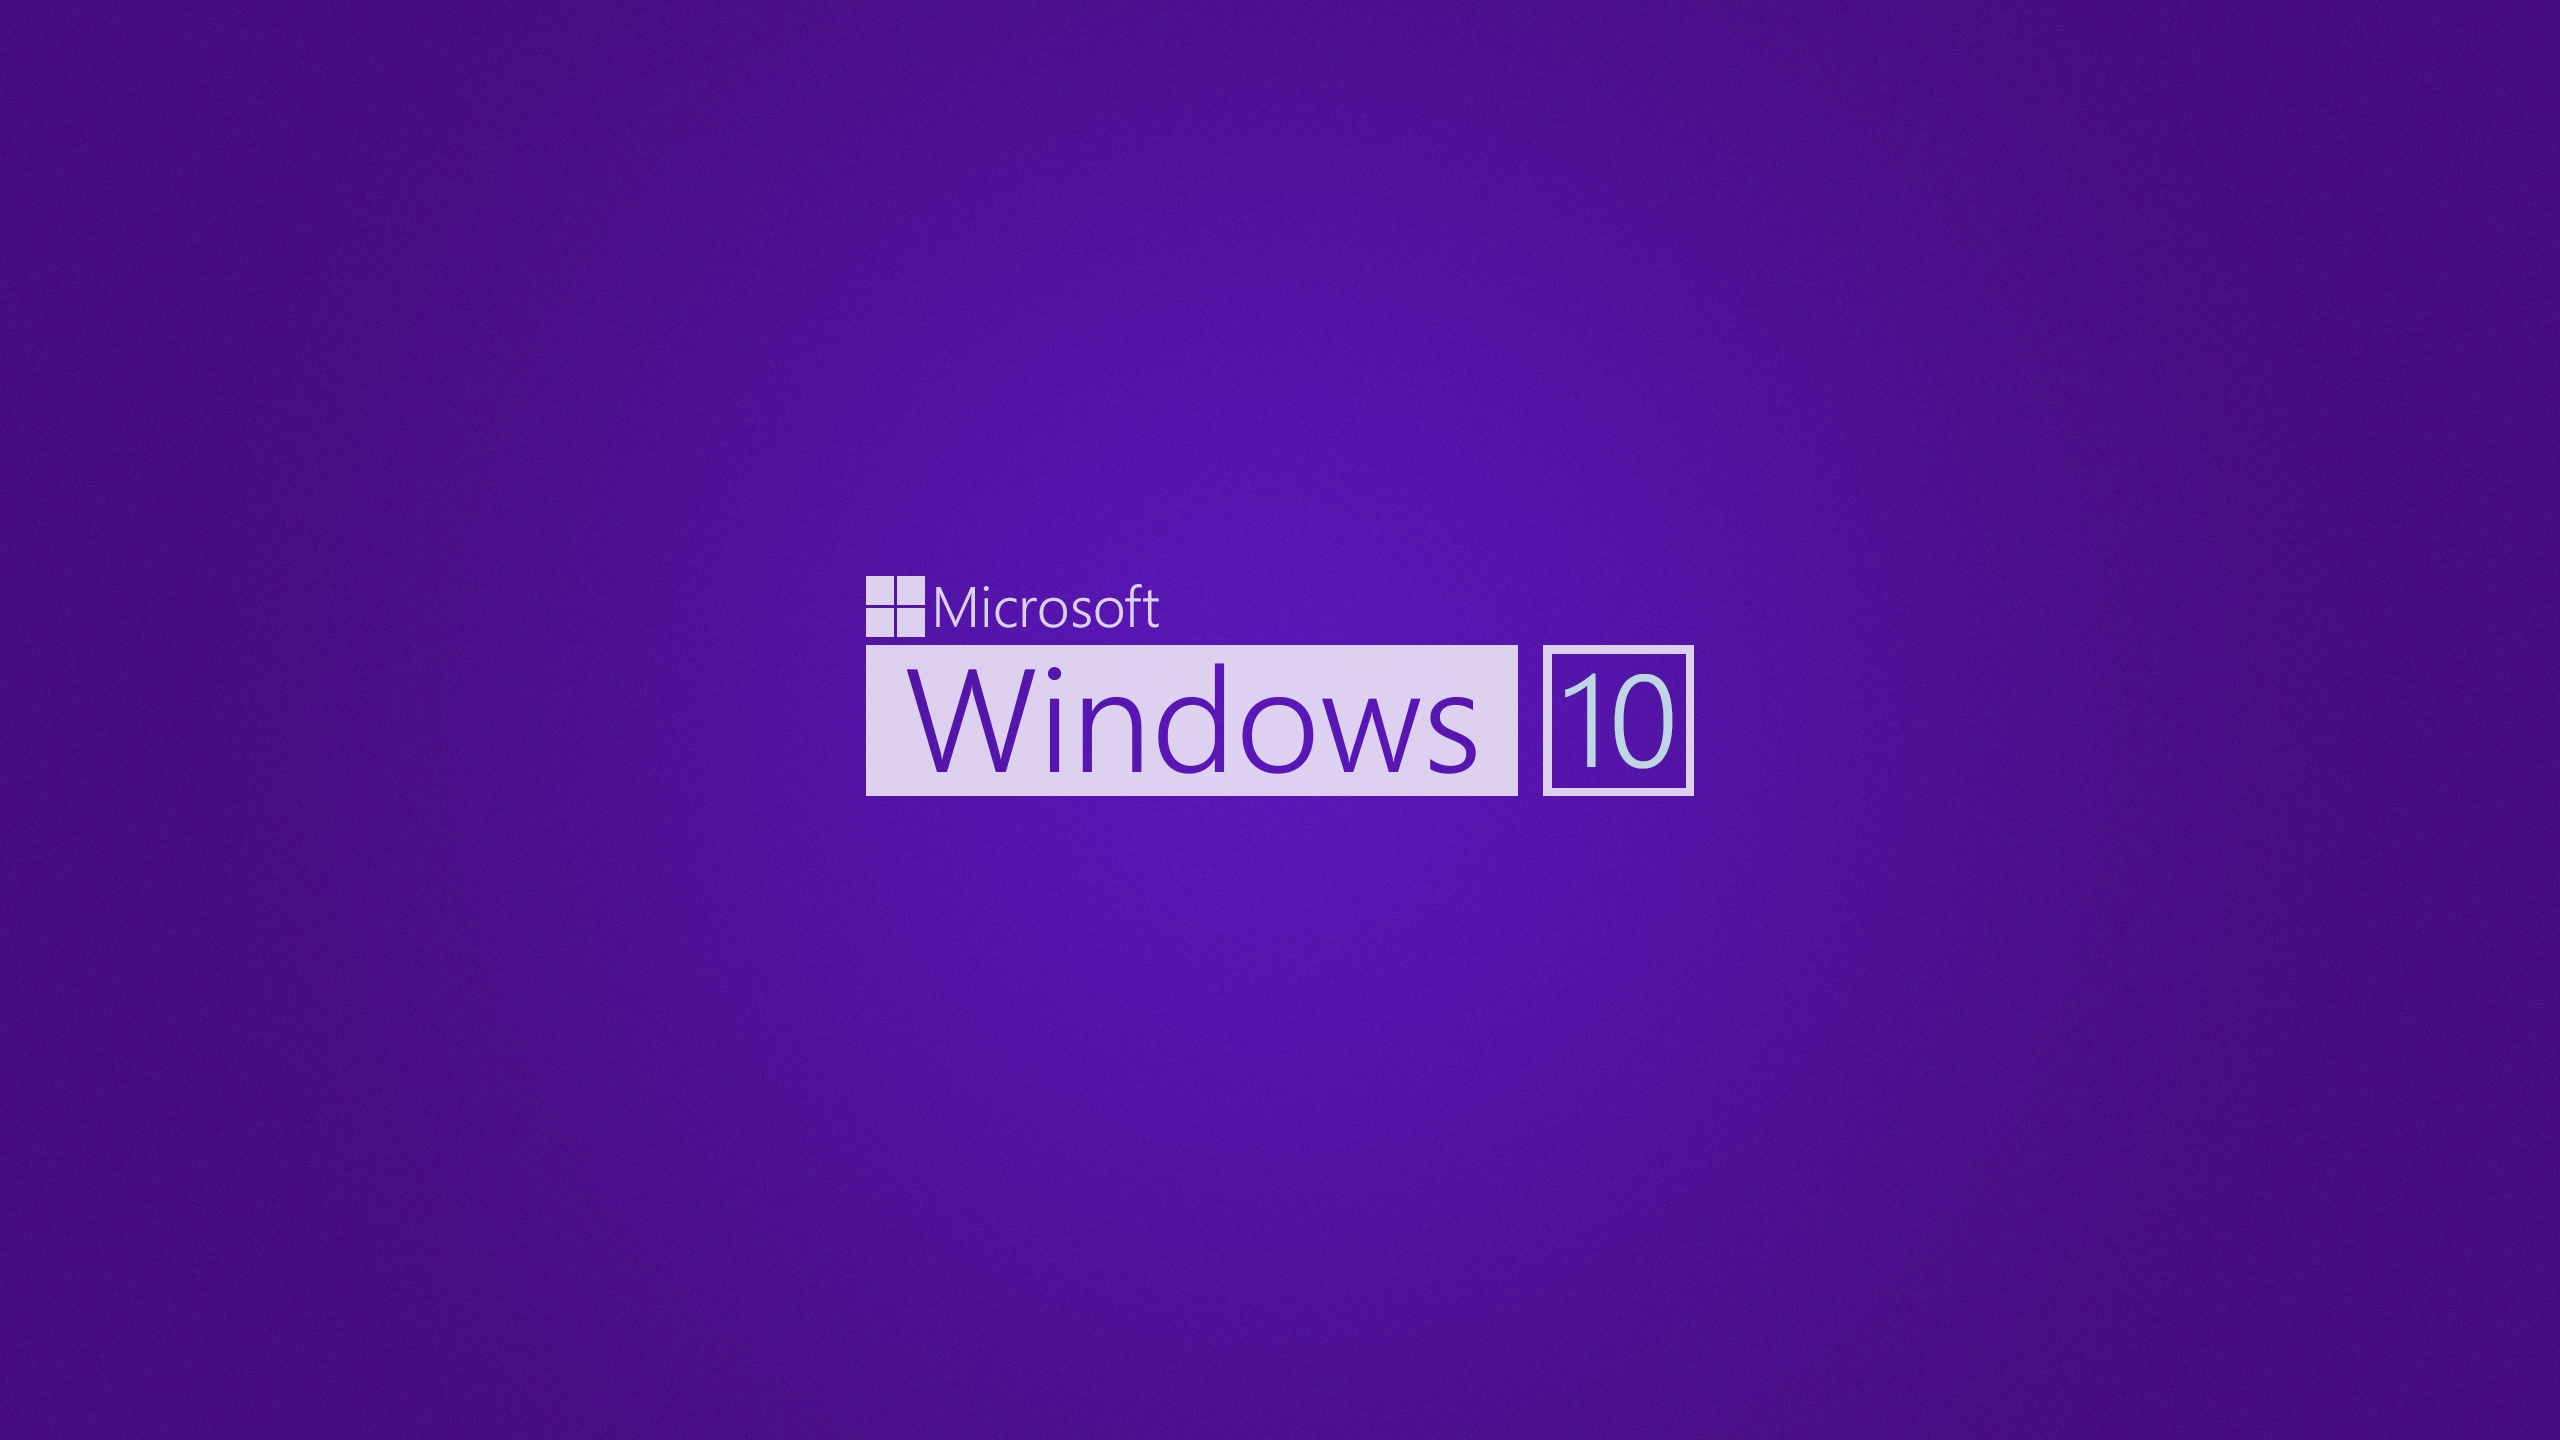 22 windows 10 wallpapers backgrounds images freecreatives for Microsoft windows 10